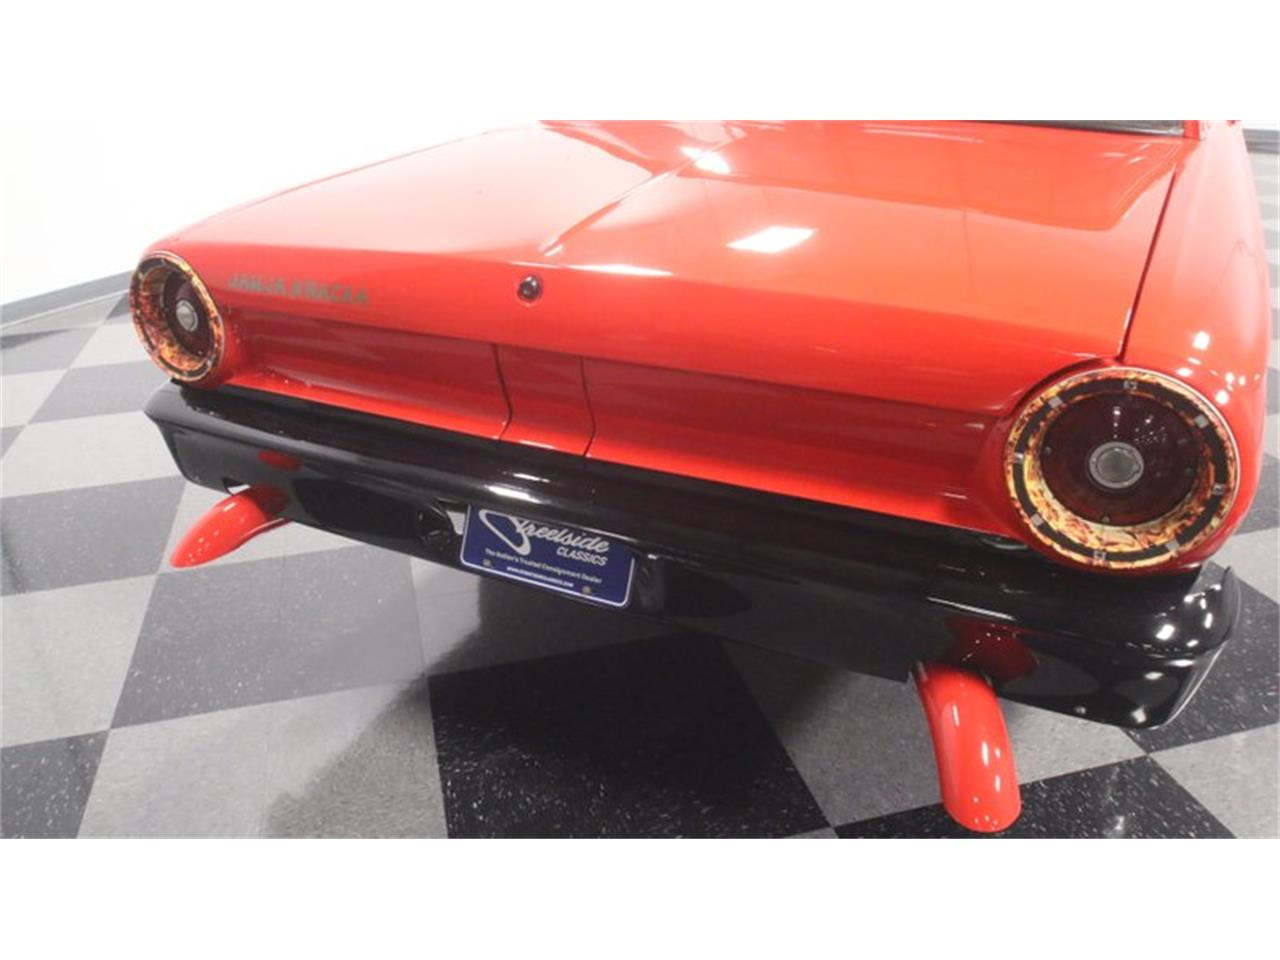 Large Picture of Classic '64 Ford Fairlane located in Georgia - $43,995.00 Offered by Streetside Classics - Atlanta - OZCM